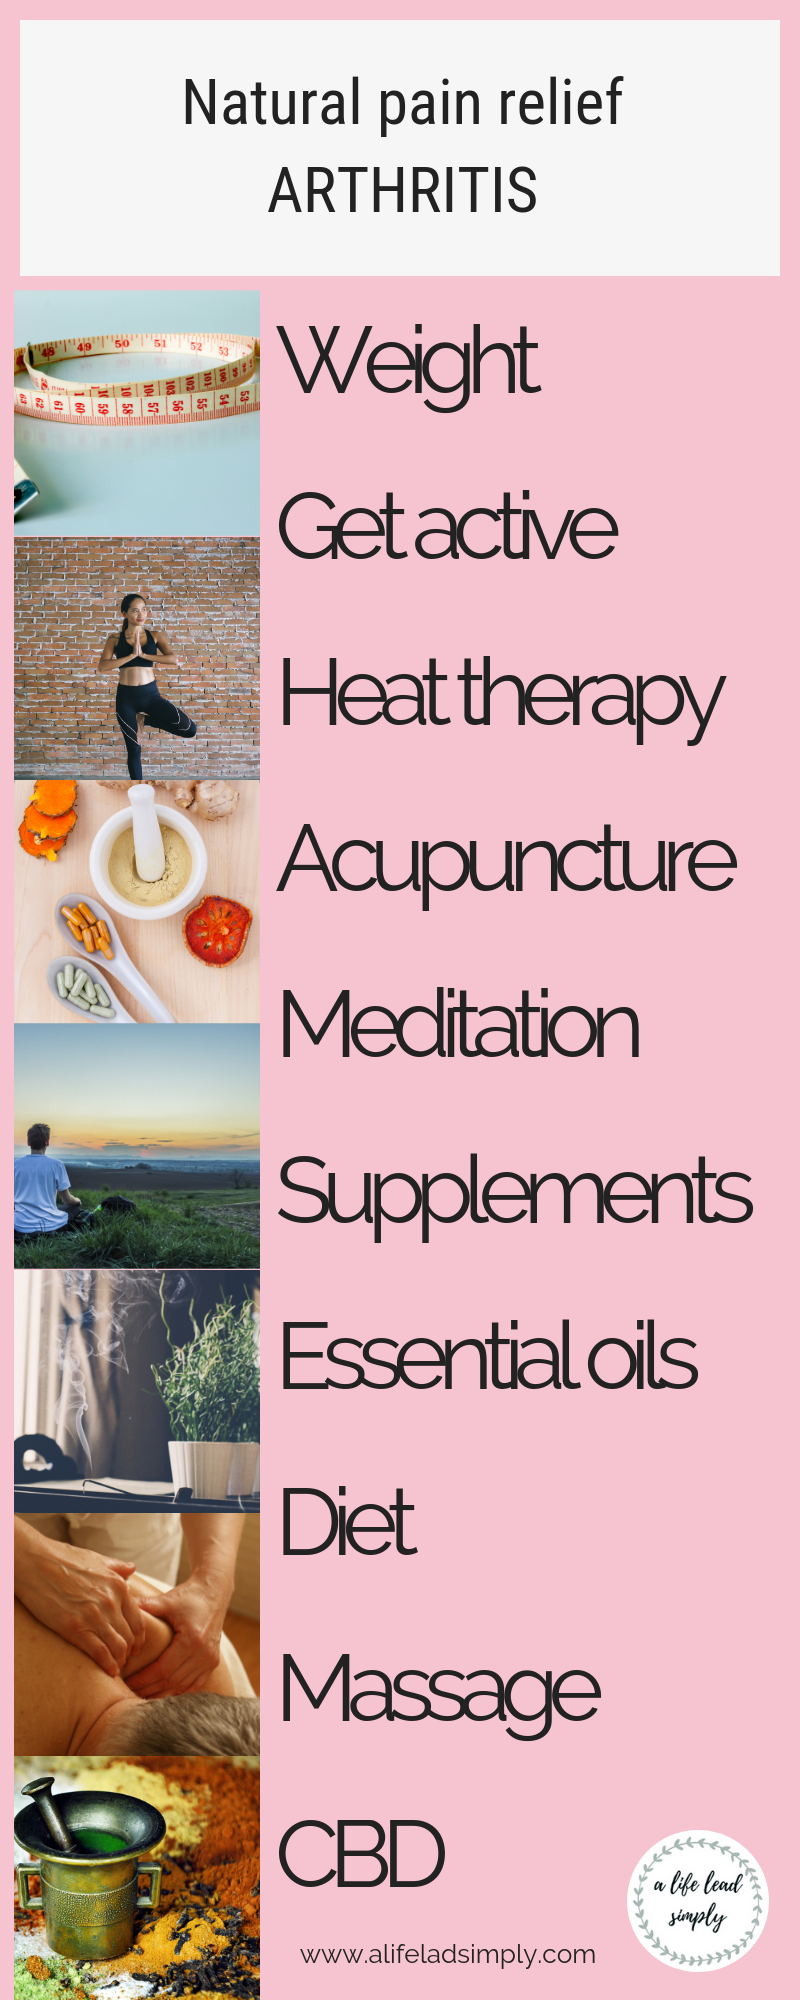 Spoonies, Natural pain relief remedies, A life lead simply, www.alifeleadsimply (6).png